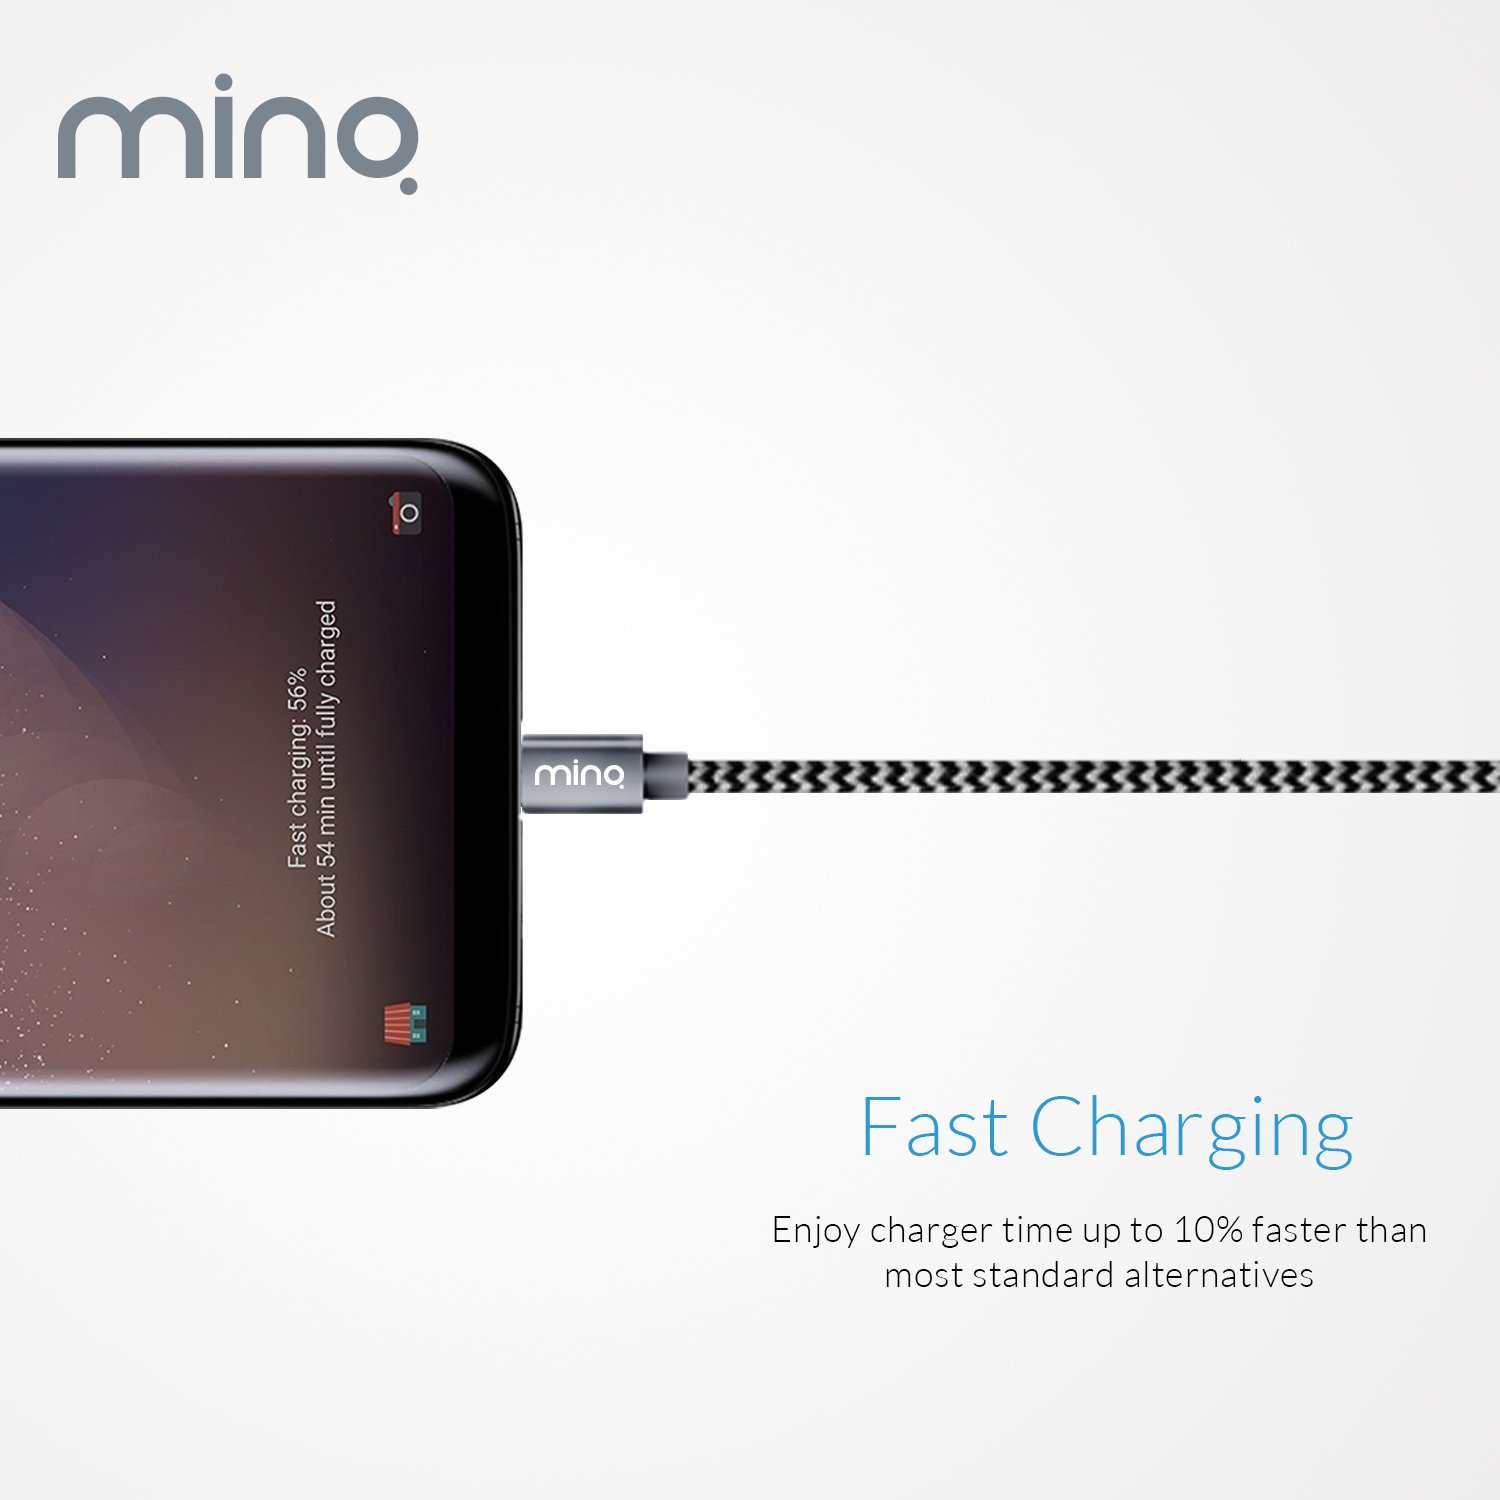 4Amps Micro USB Fast Charging and High Speed Amazon Electronics